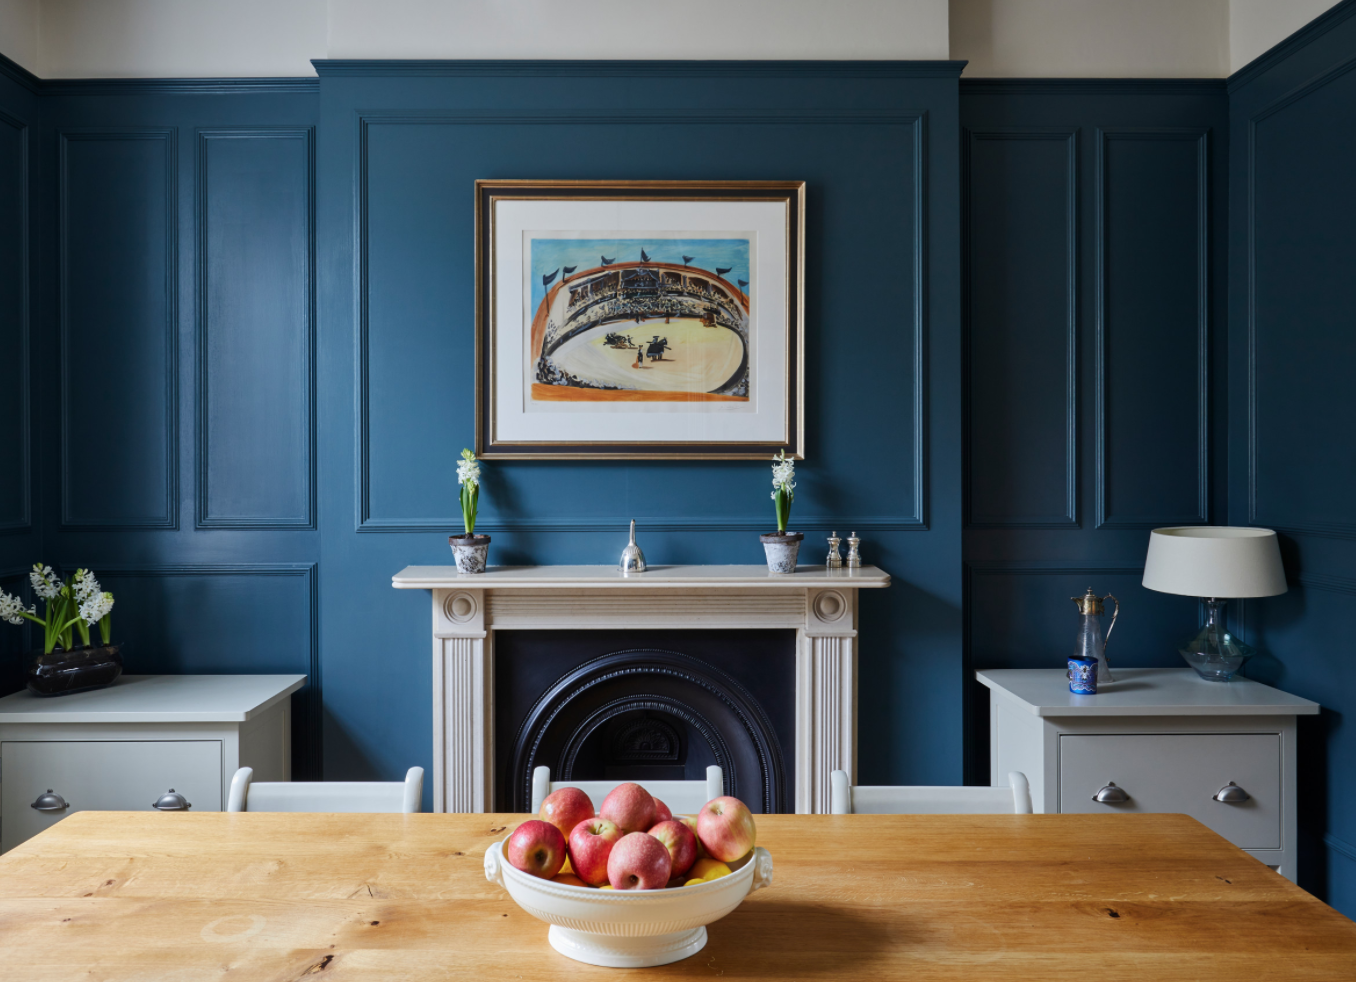 Dining room with dark blue panelled walls in a West London period home.